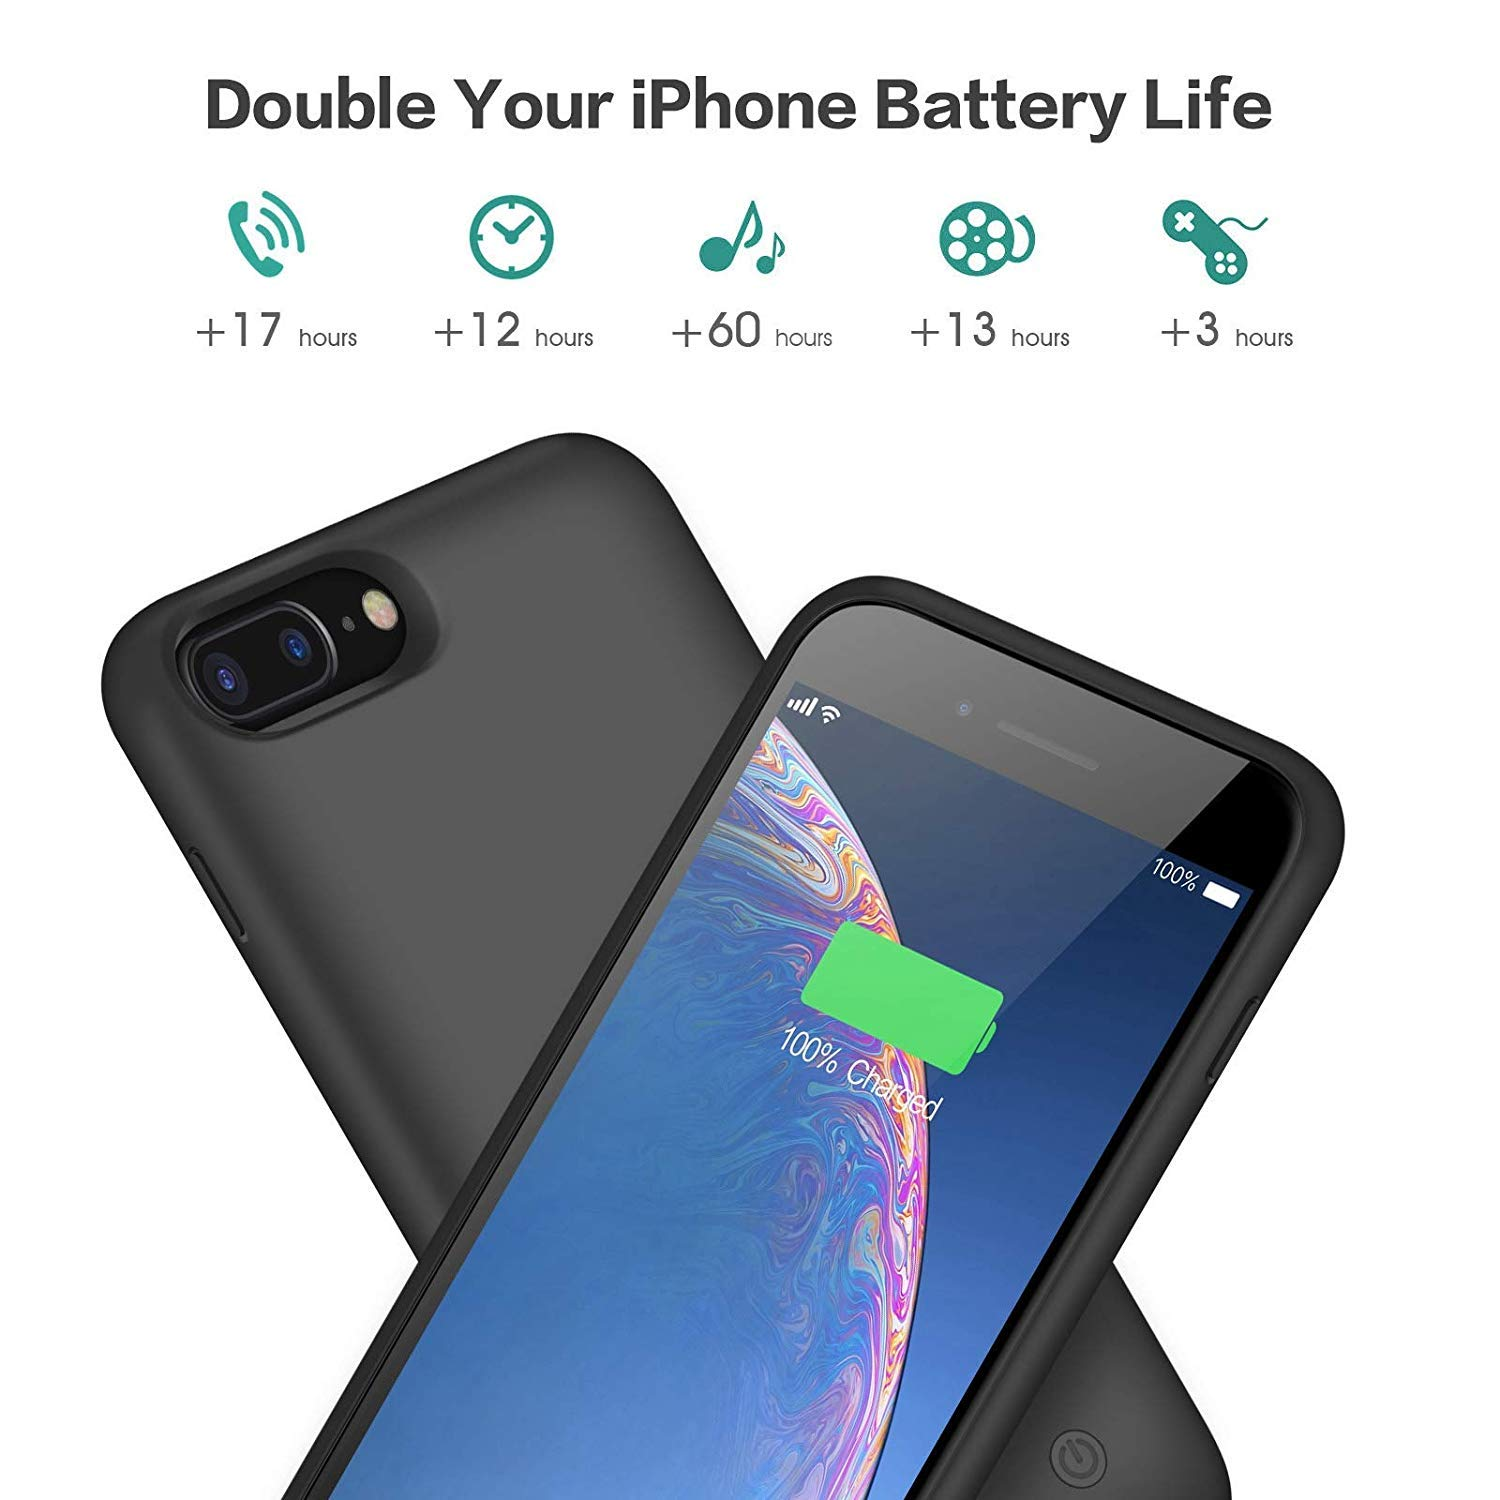 Battery Case for iPhone 8 Plus/7 Plus, [8500mAh] Xooparc Protective Portable Charging Case Rechargeable Extended Battery Pack for Apple iPhone 8 Plus&7 Plus (5.5') Backup Power Bank Cover - Black by Xooparc (Image #2)